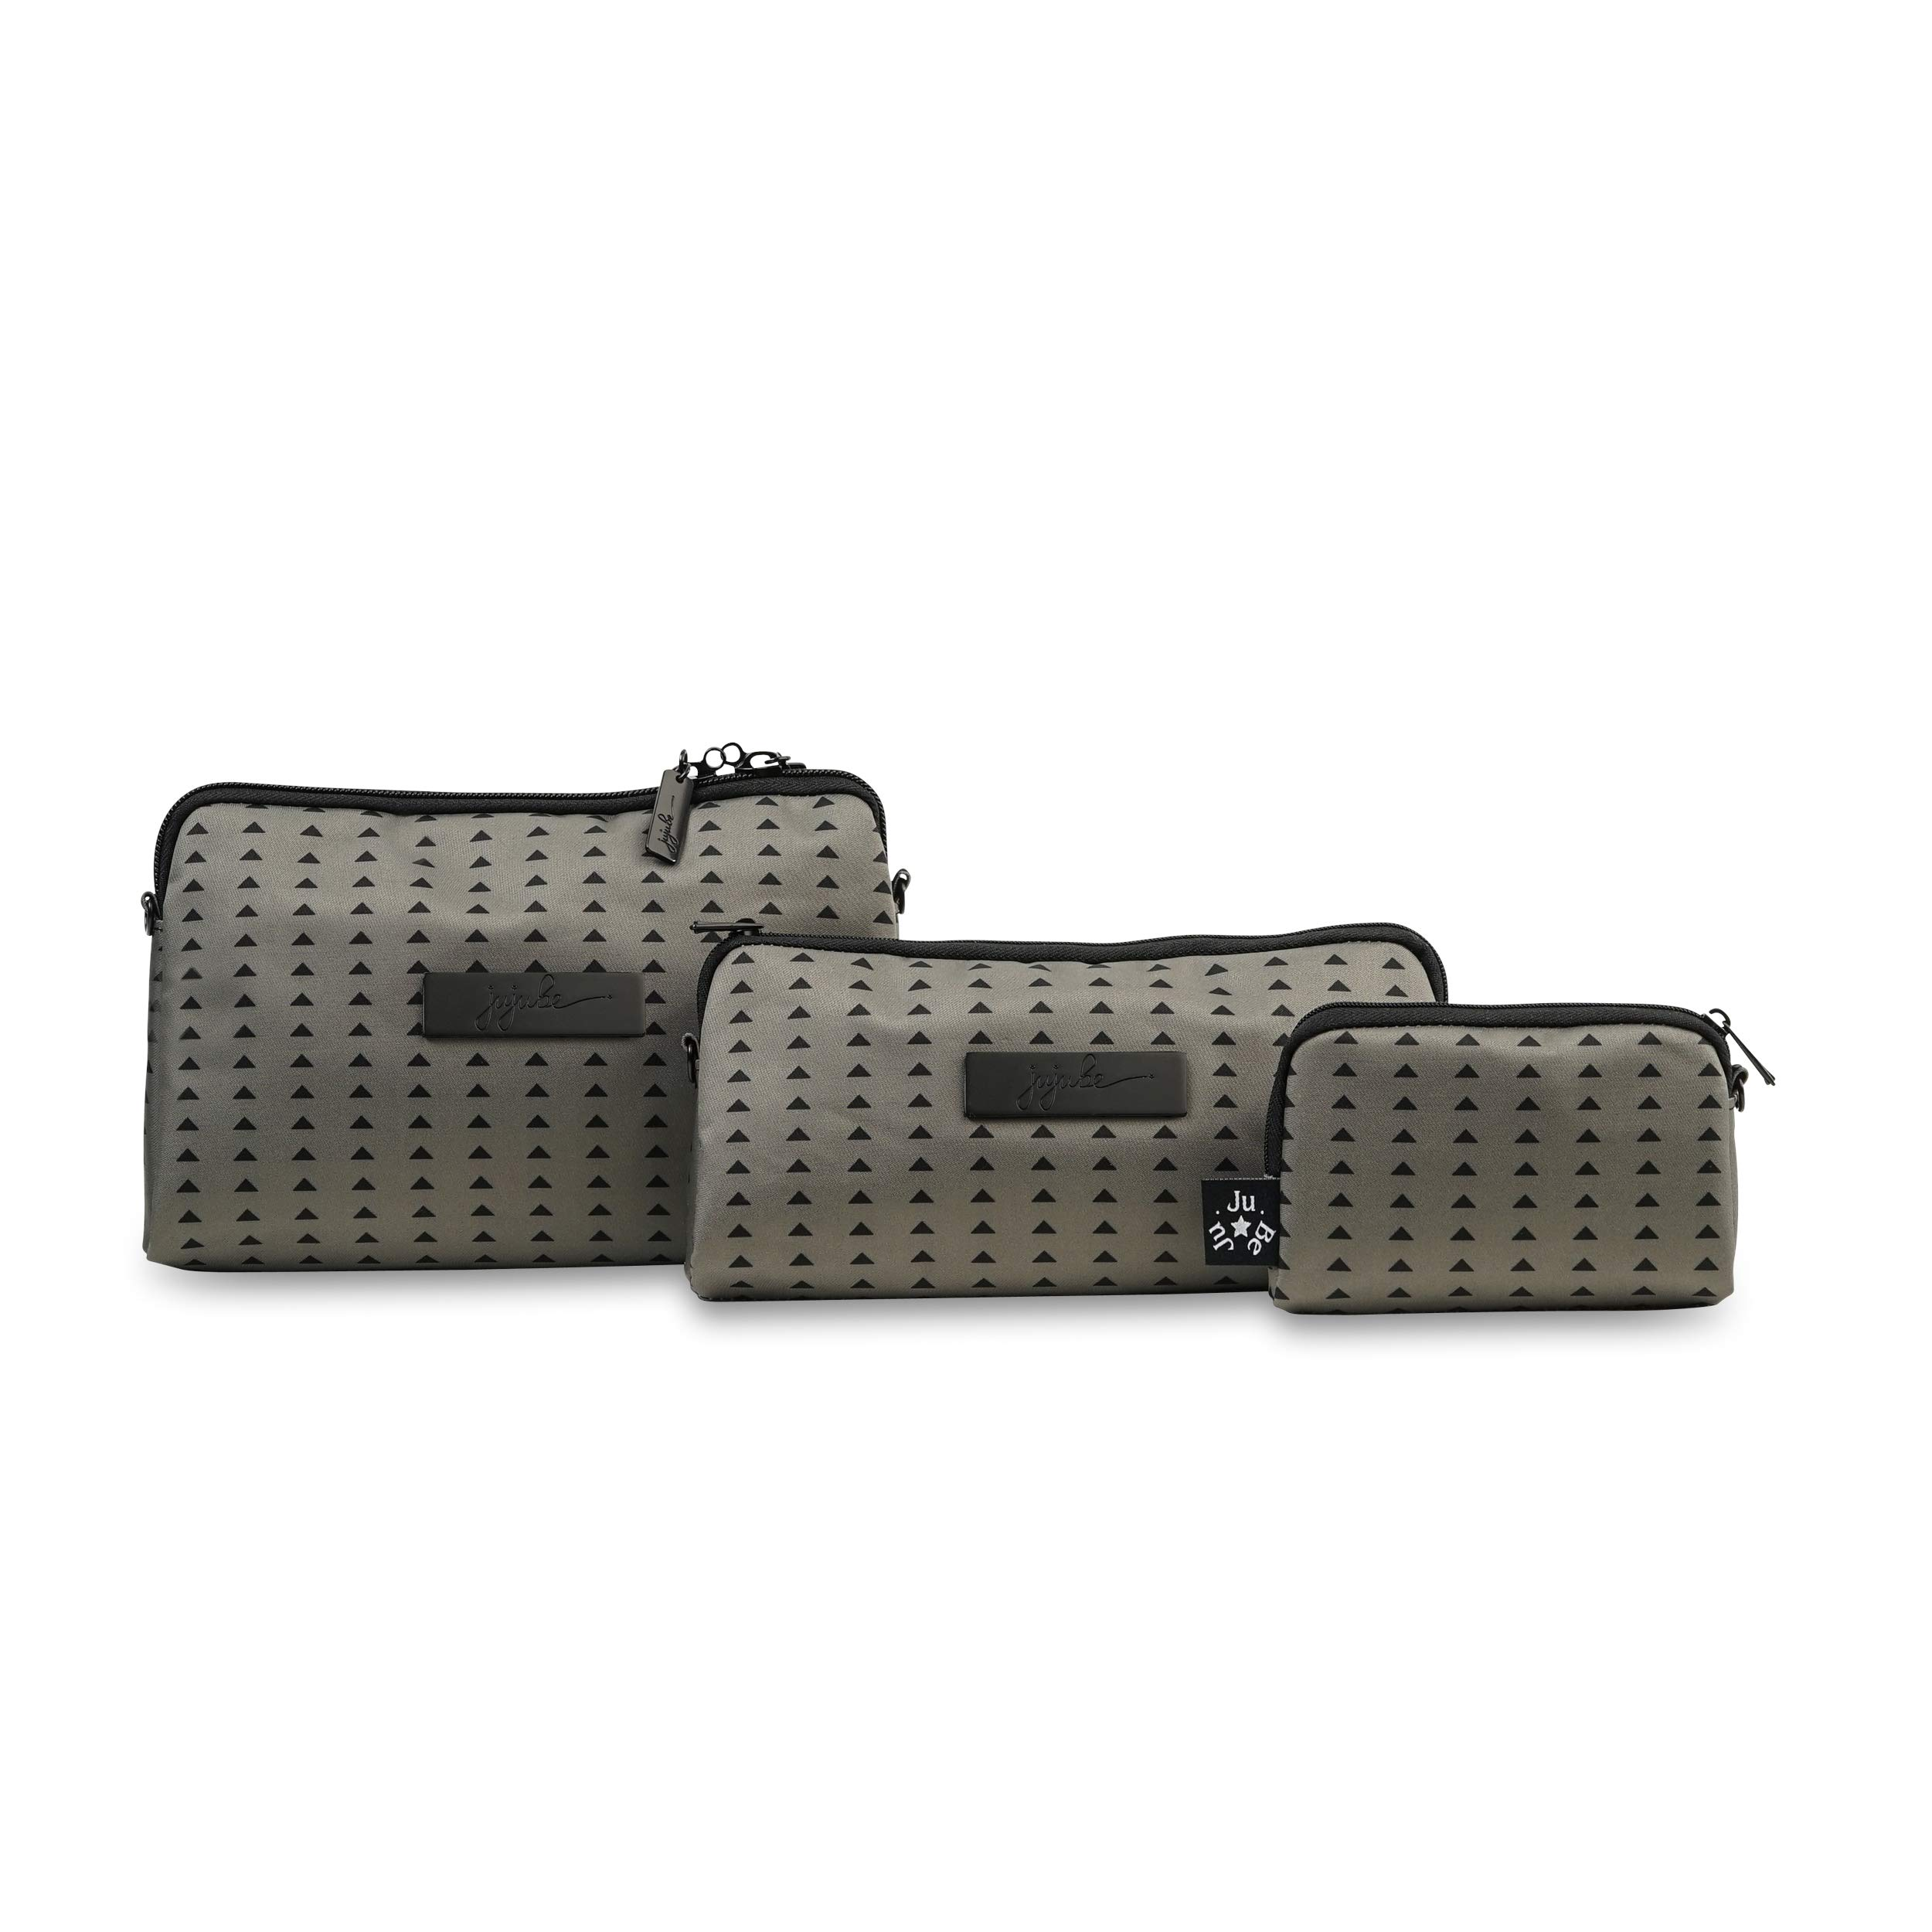 JuJuBe Be Set Travel Accessory Bags, Onyx Collection - Black Olive